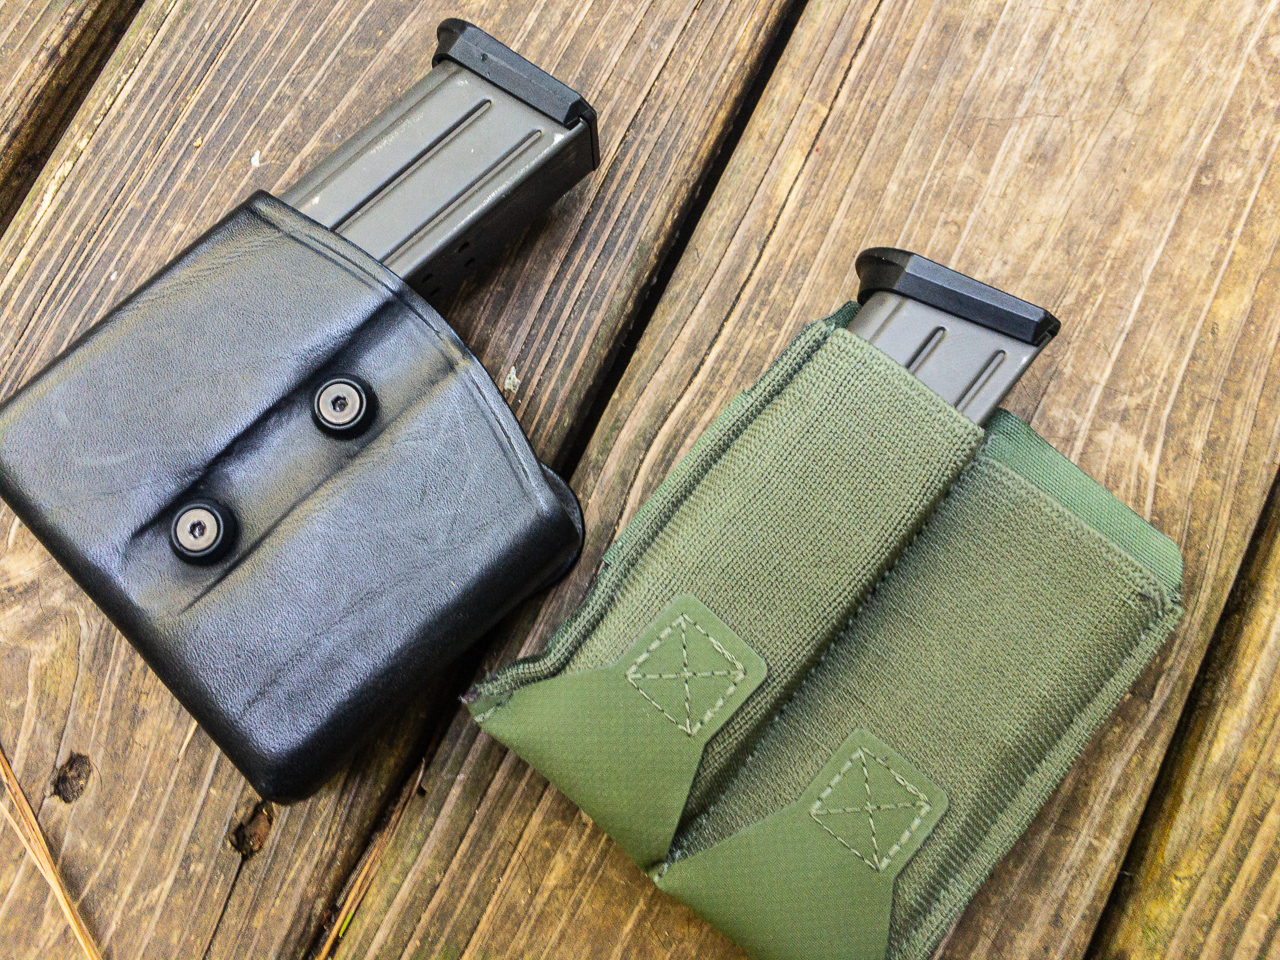 I love these magazine carriers from Blue Force Gear (right). They're thin, flexible, comfortable, secure, and most important offer a slick and consistent draw.